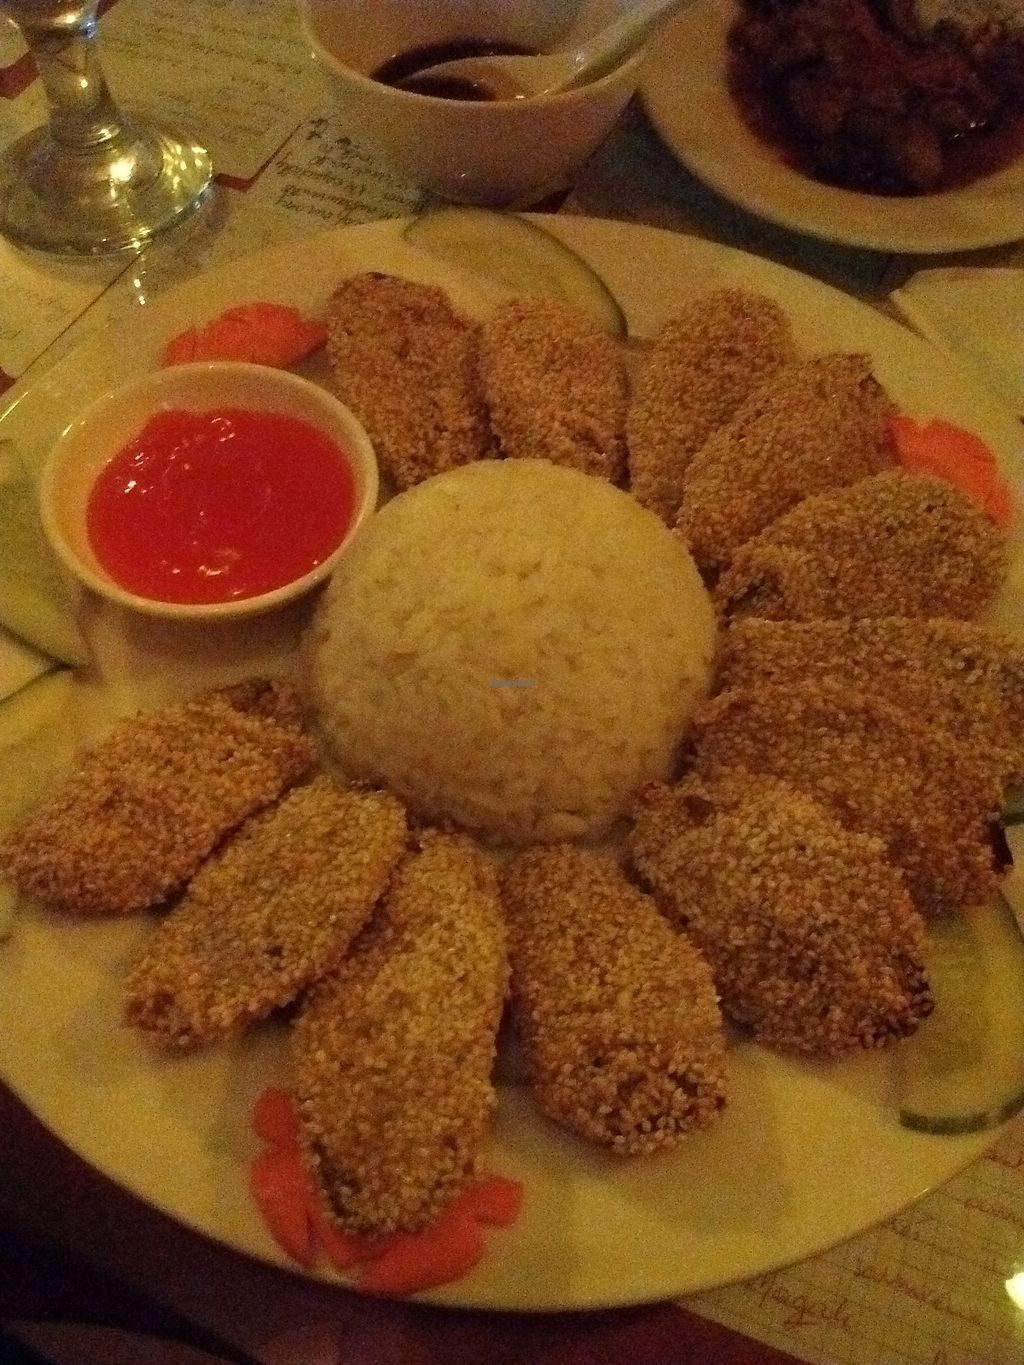 """Photo of Aubergine Cafe  by <a href=""""/members/profile/VeganGecko"""">VeganGecko</a> <br/>Deep fried eggplant with sesame  <br/> June 24, 2017  - <a href='/contact/abuse/image/42628/272774'>Report</a>"""